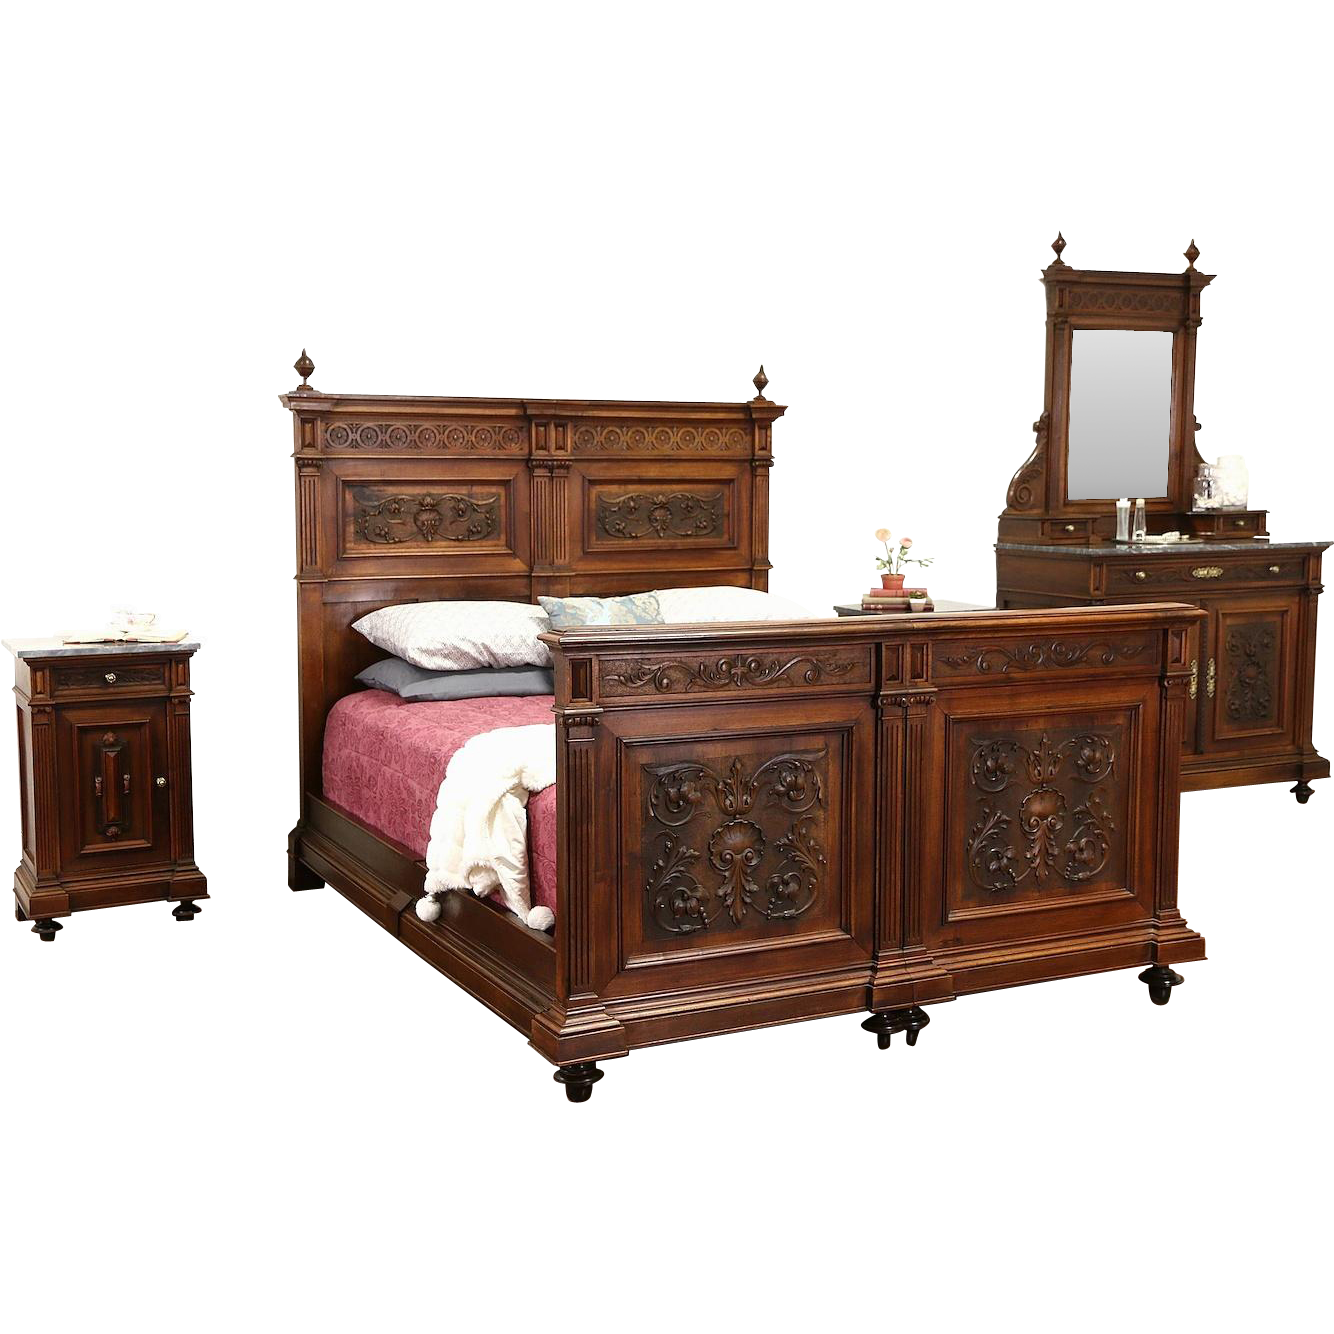 Italian 1900 Antique Renaissance Carved Walnut 4 Pc. Queen Size Bedroom Set